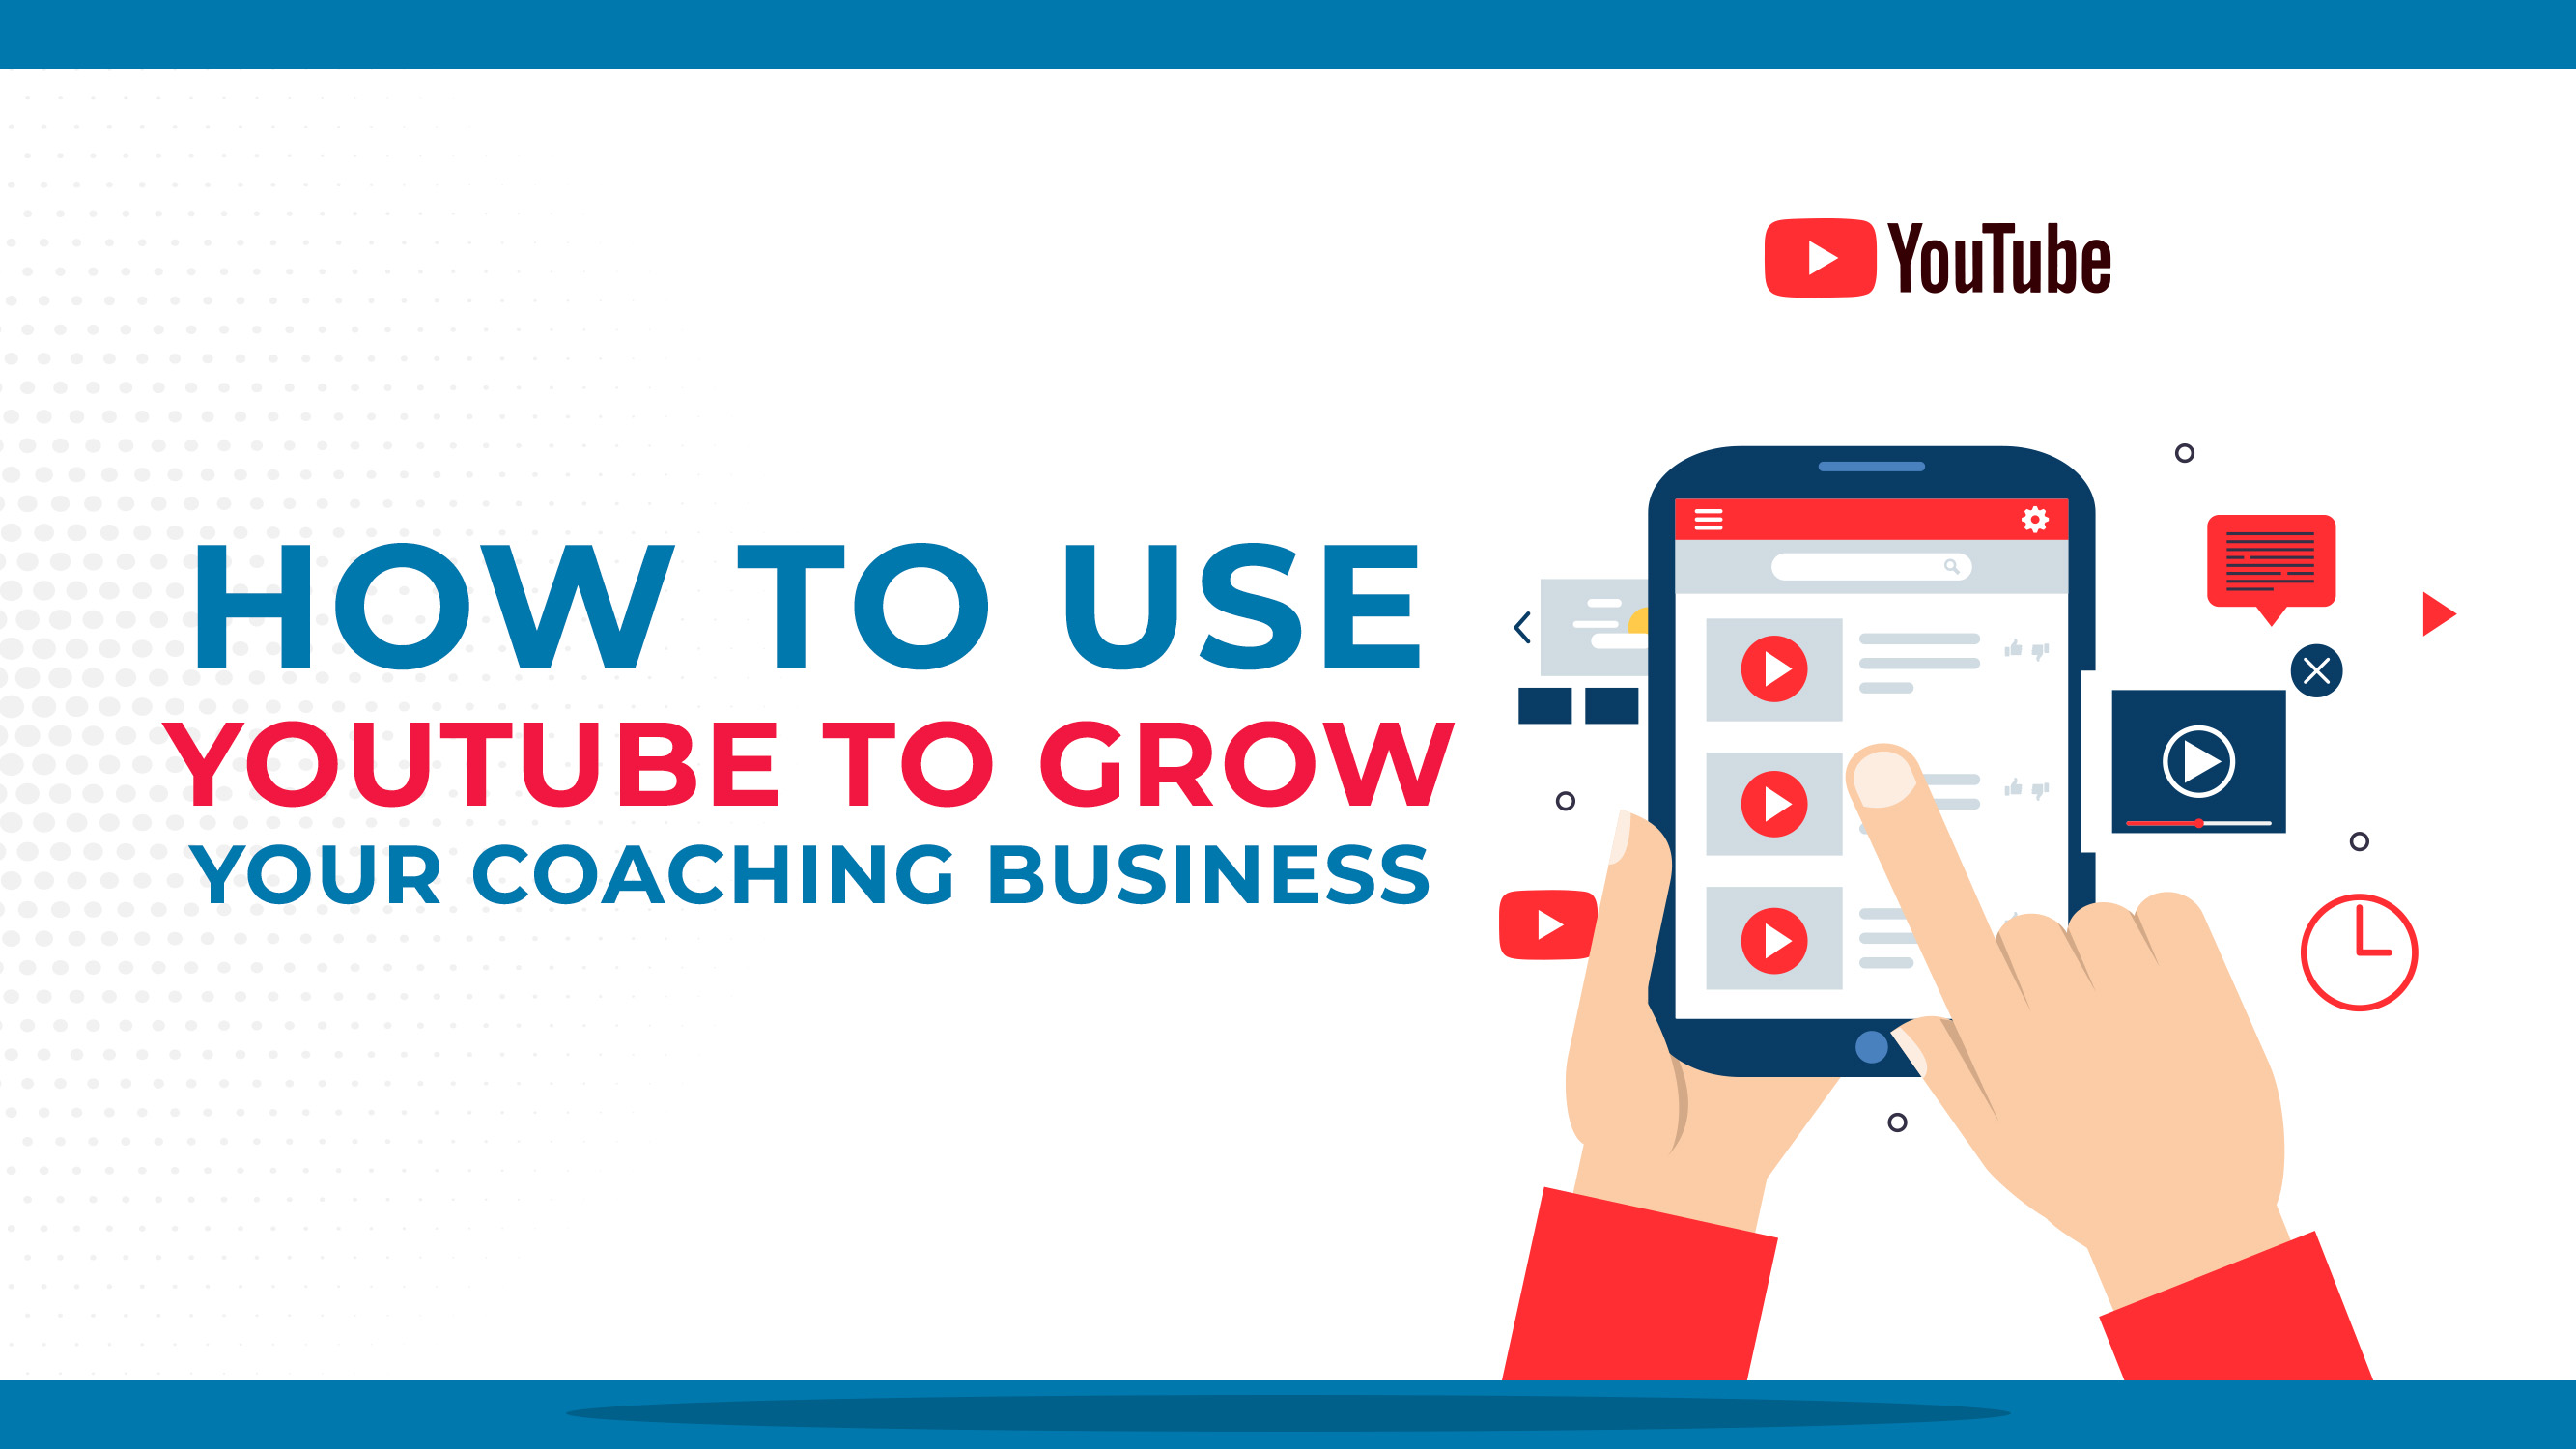 Come usare YouTube per far crescere il tuo business di Coaching